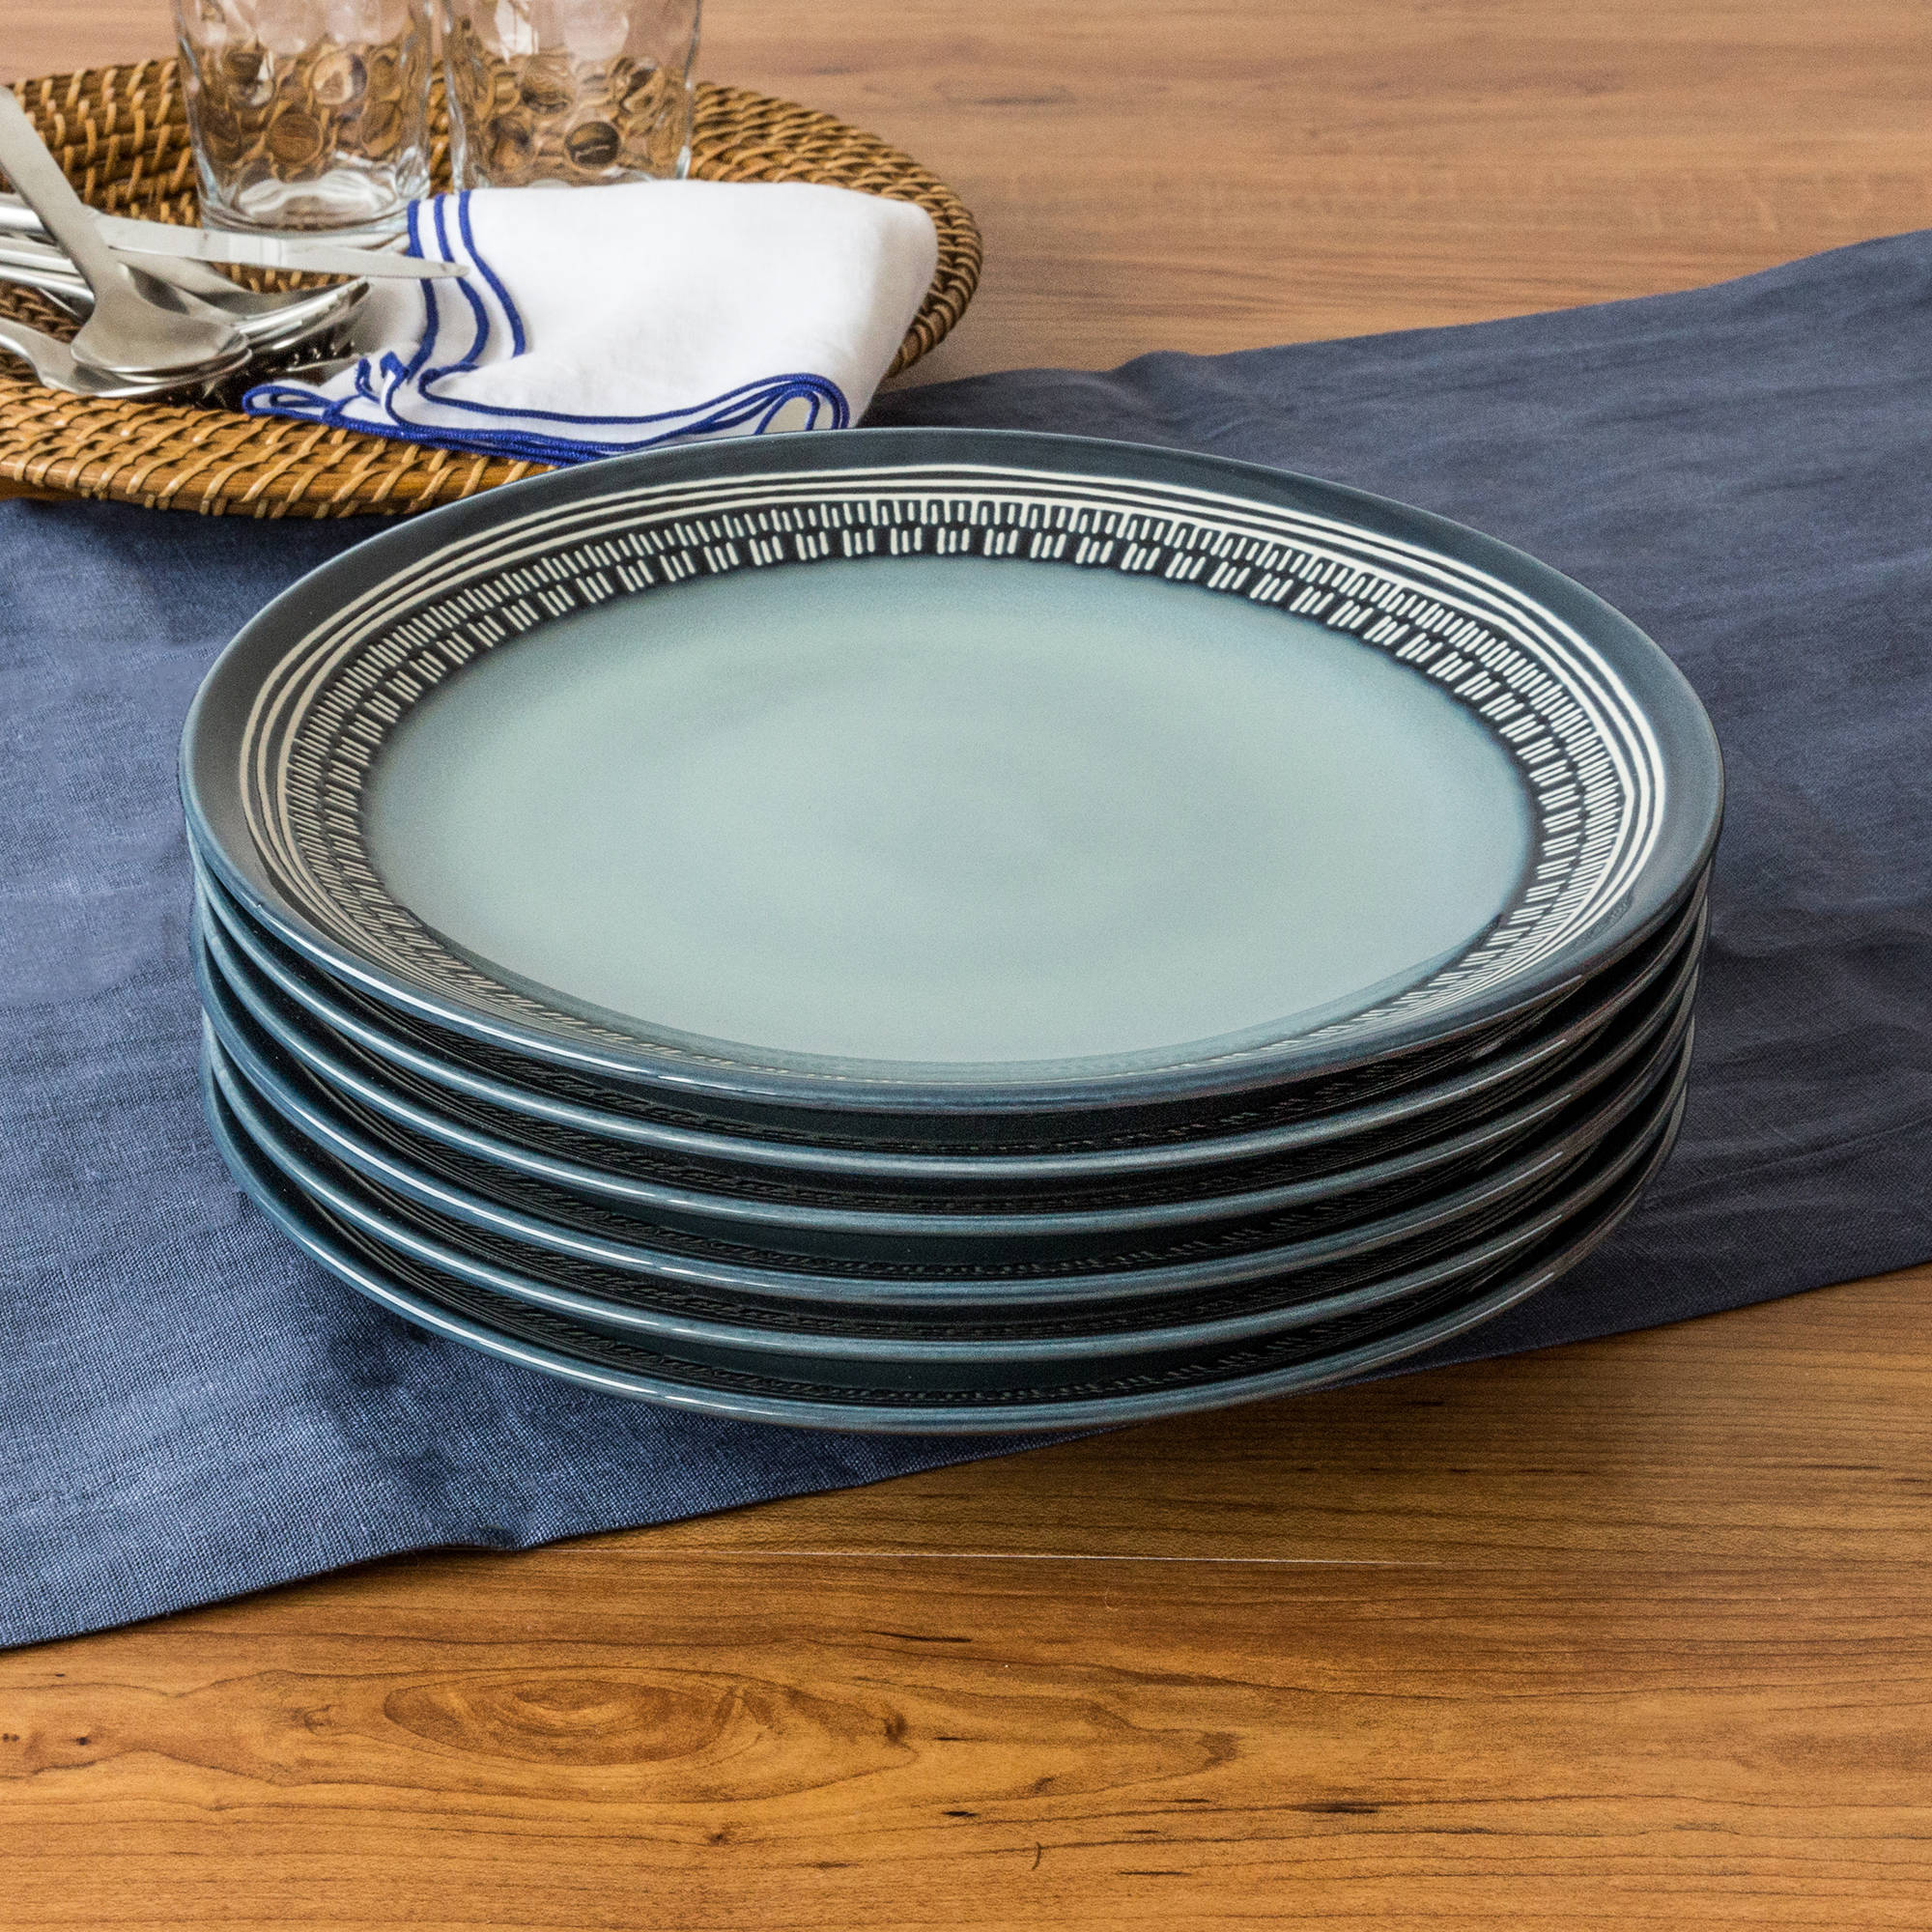 Better Homes and Gardens Teal Medallion Dinner Plates, Teal, Set of 6